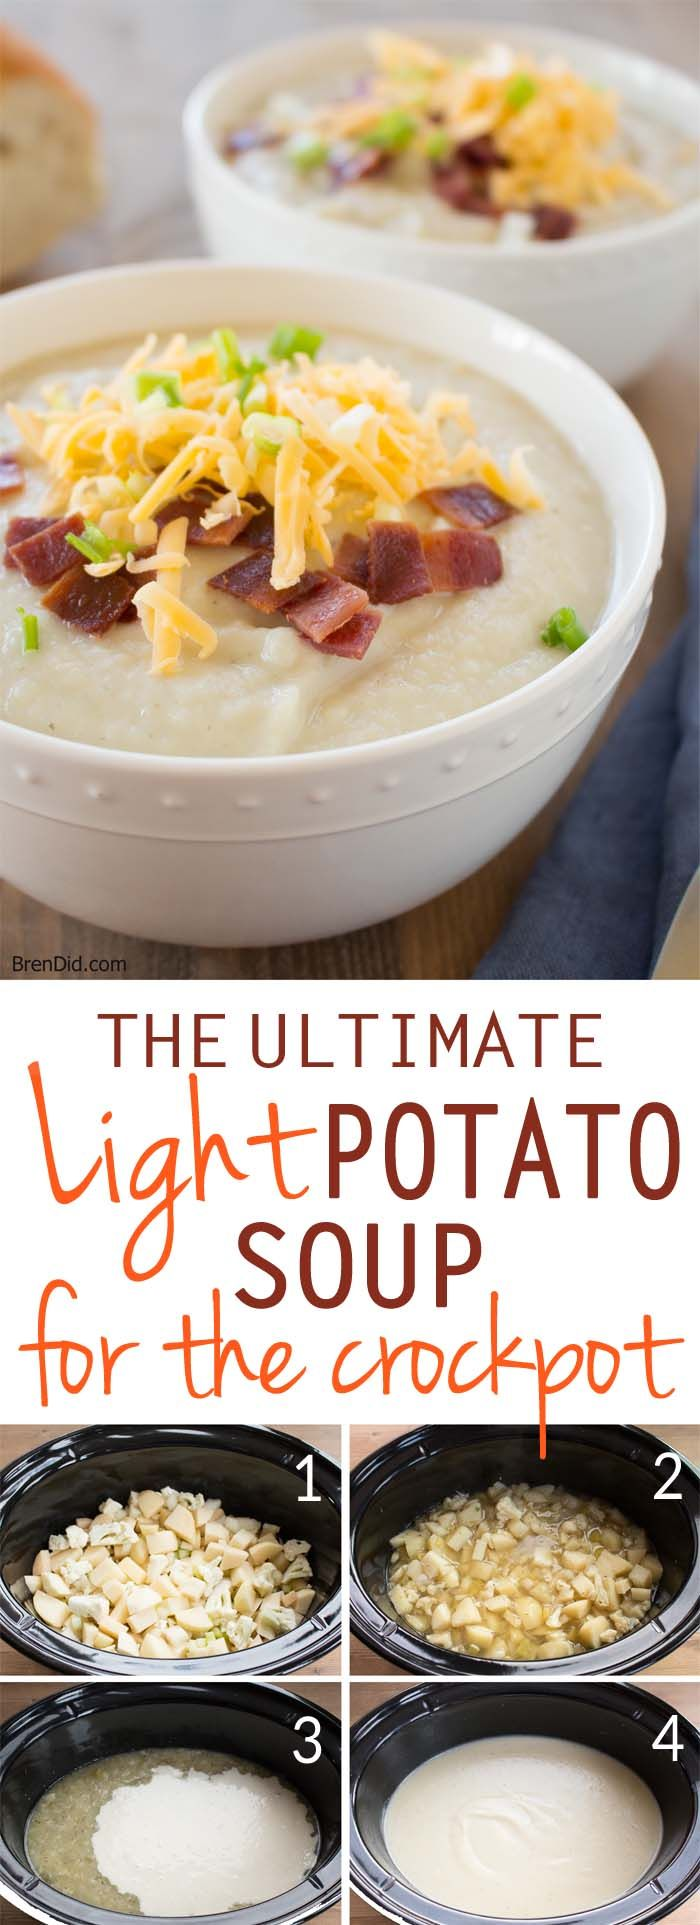 Healthy crock pot recipe. Light potato soup is an easy & delicious dinner choice. Classic baked potato soup flavor, full of (secret) vegetables. Loaded baked potato soup was never so good! #crockpot #slowcooker #potatosoup